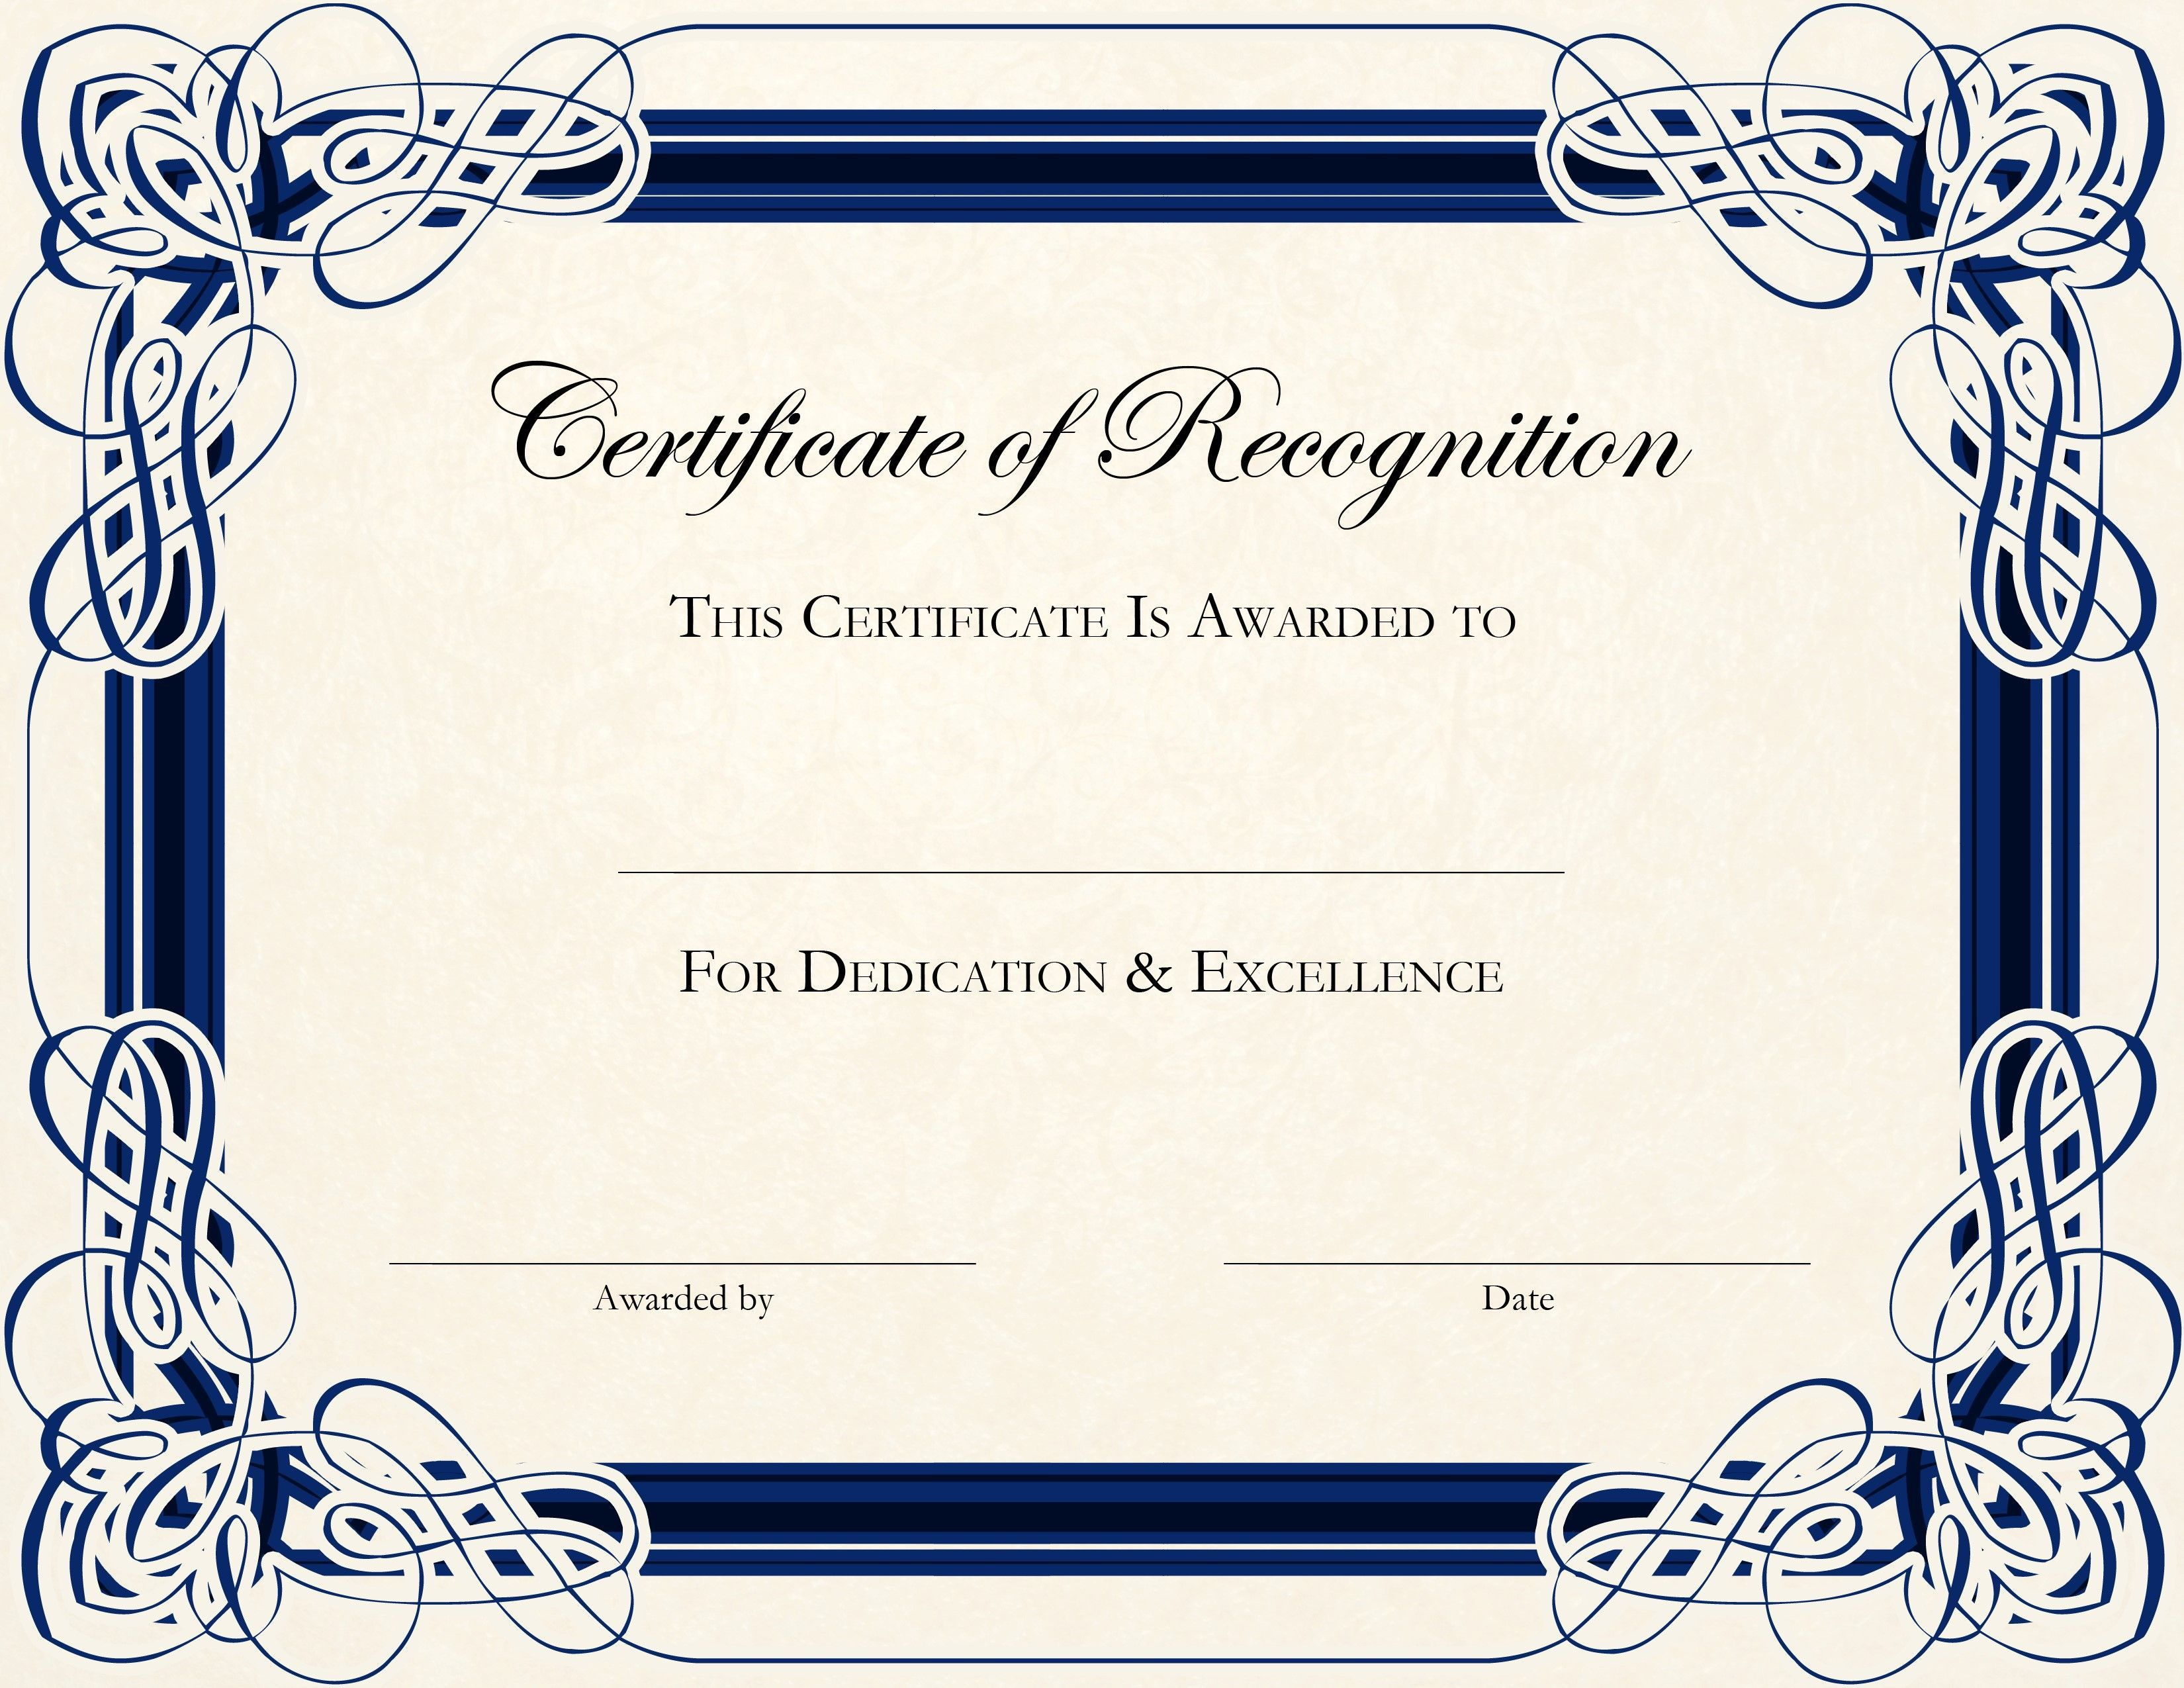 002 Fantastic Certificate Of Award Template Word Free Concept Full